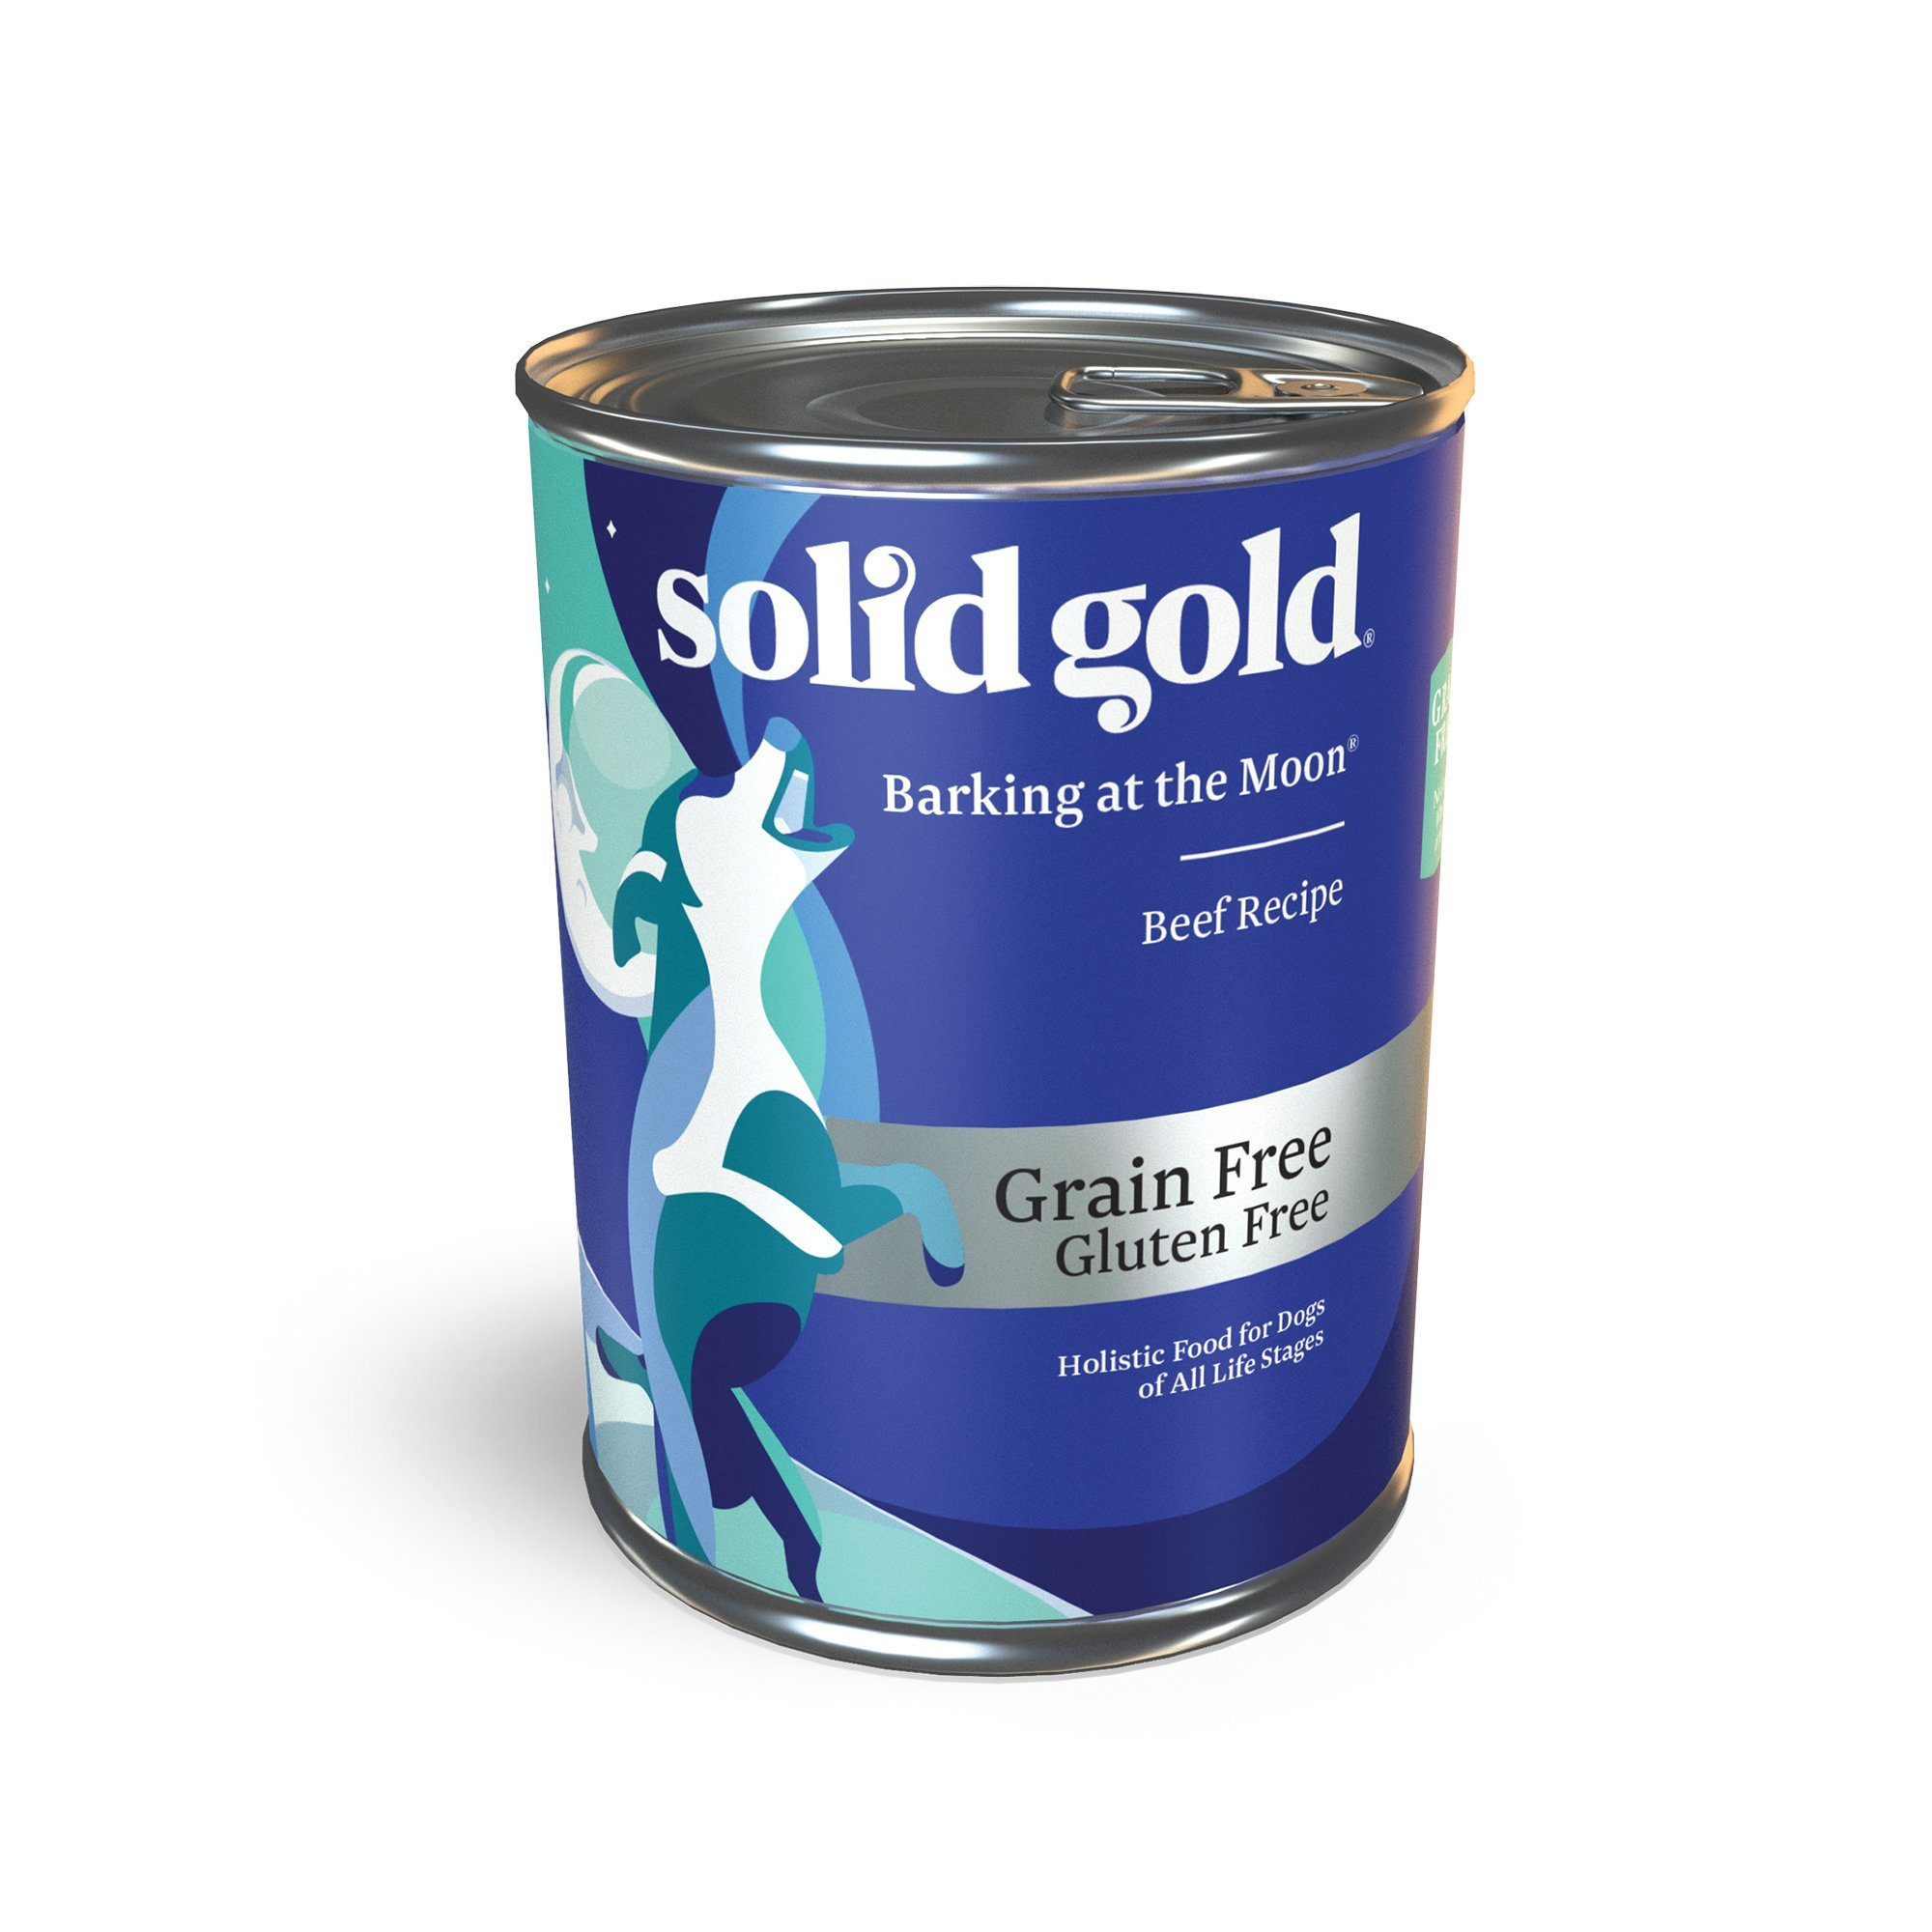 Solid Gold High Protein Wet Dog Food; Barking at The Moon Grain Free with Real Beef; 12ct/13.2oz can